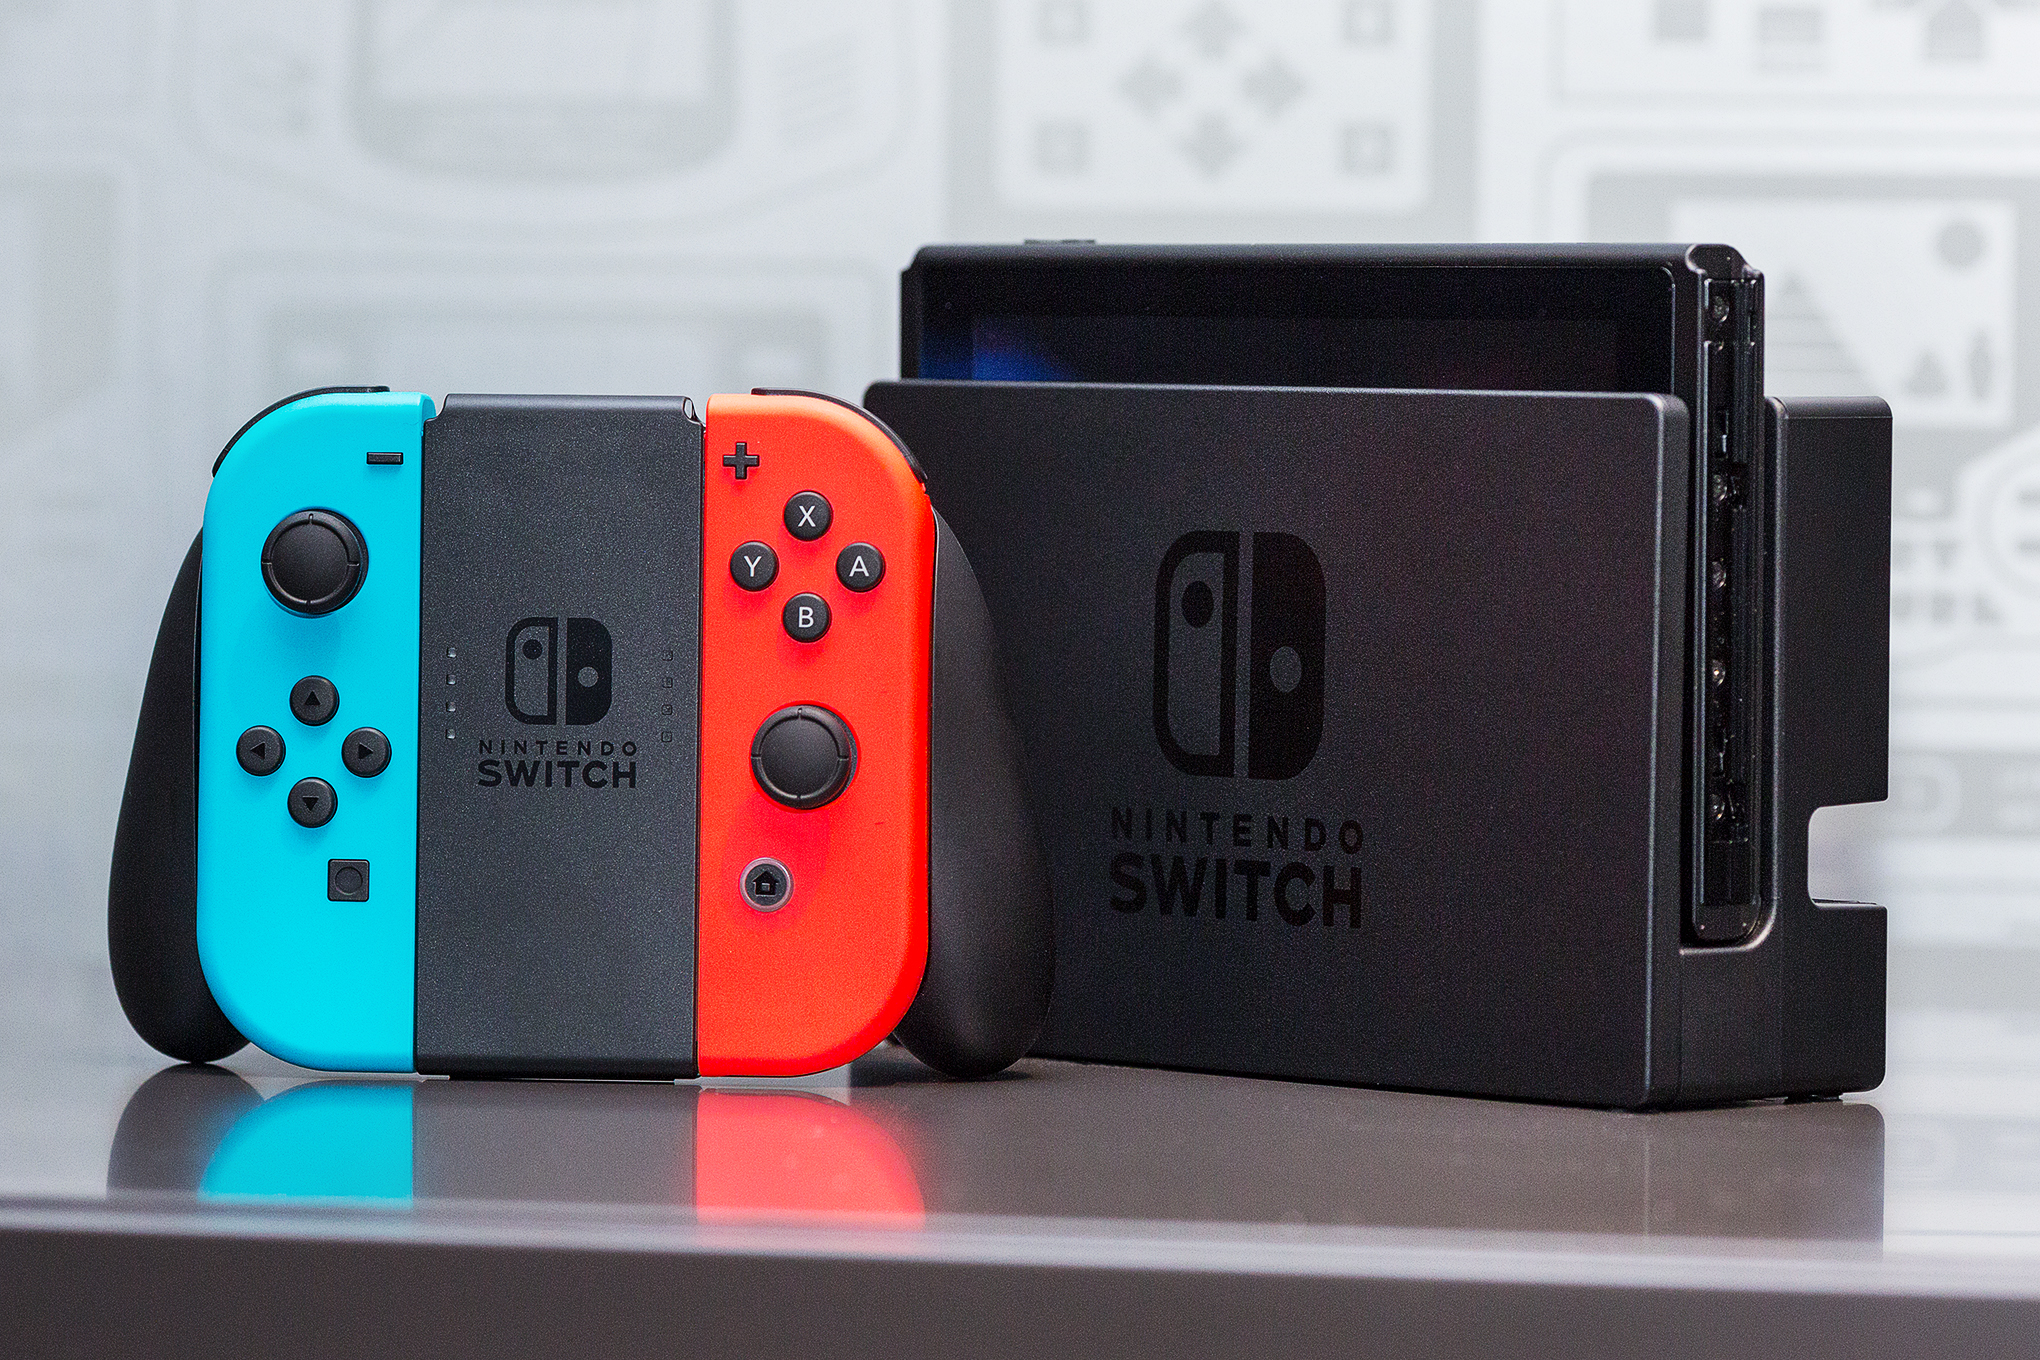 Nintendo Switch eclipses Wii U lifetime sales in Japan